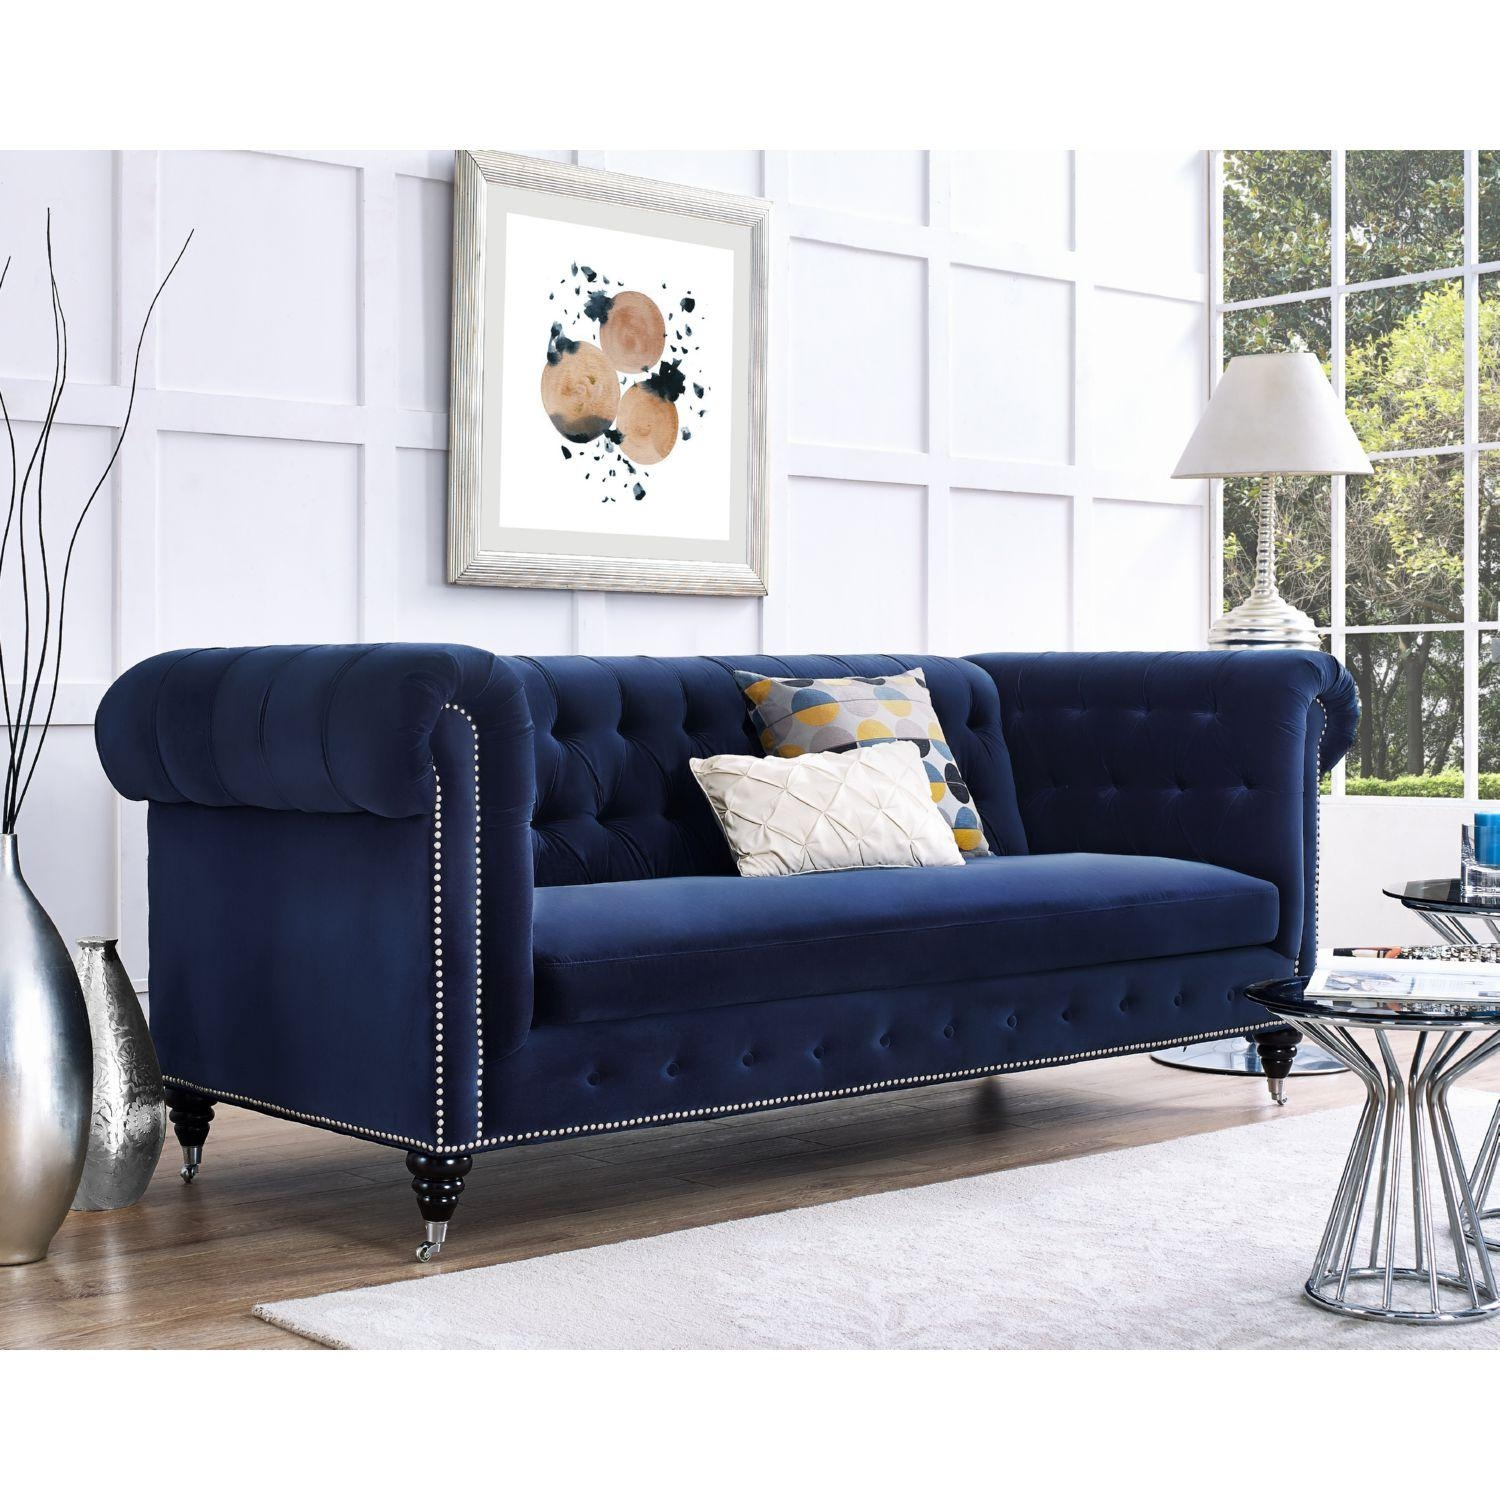 Sofa: Black Velvet Sofa | Navy Velvet Sofa | Blue Velvet Sofa Bed With Black Velvet Sofas (Image 14 of 20)